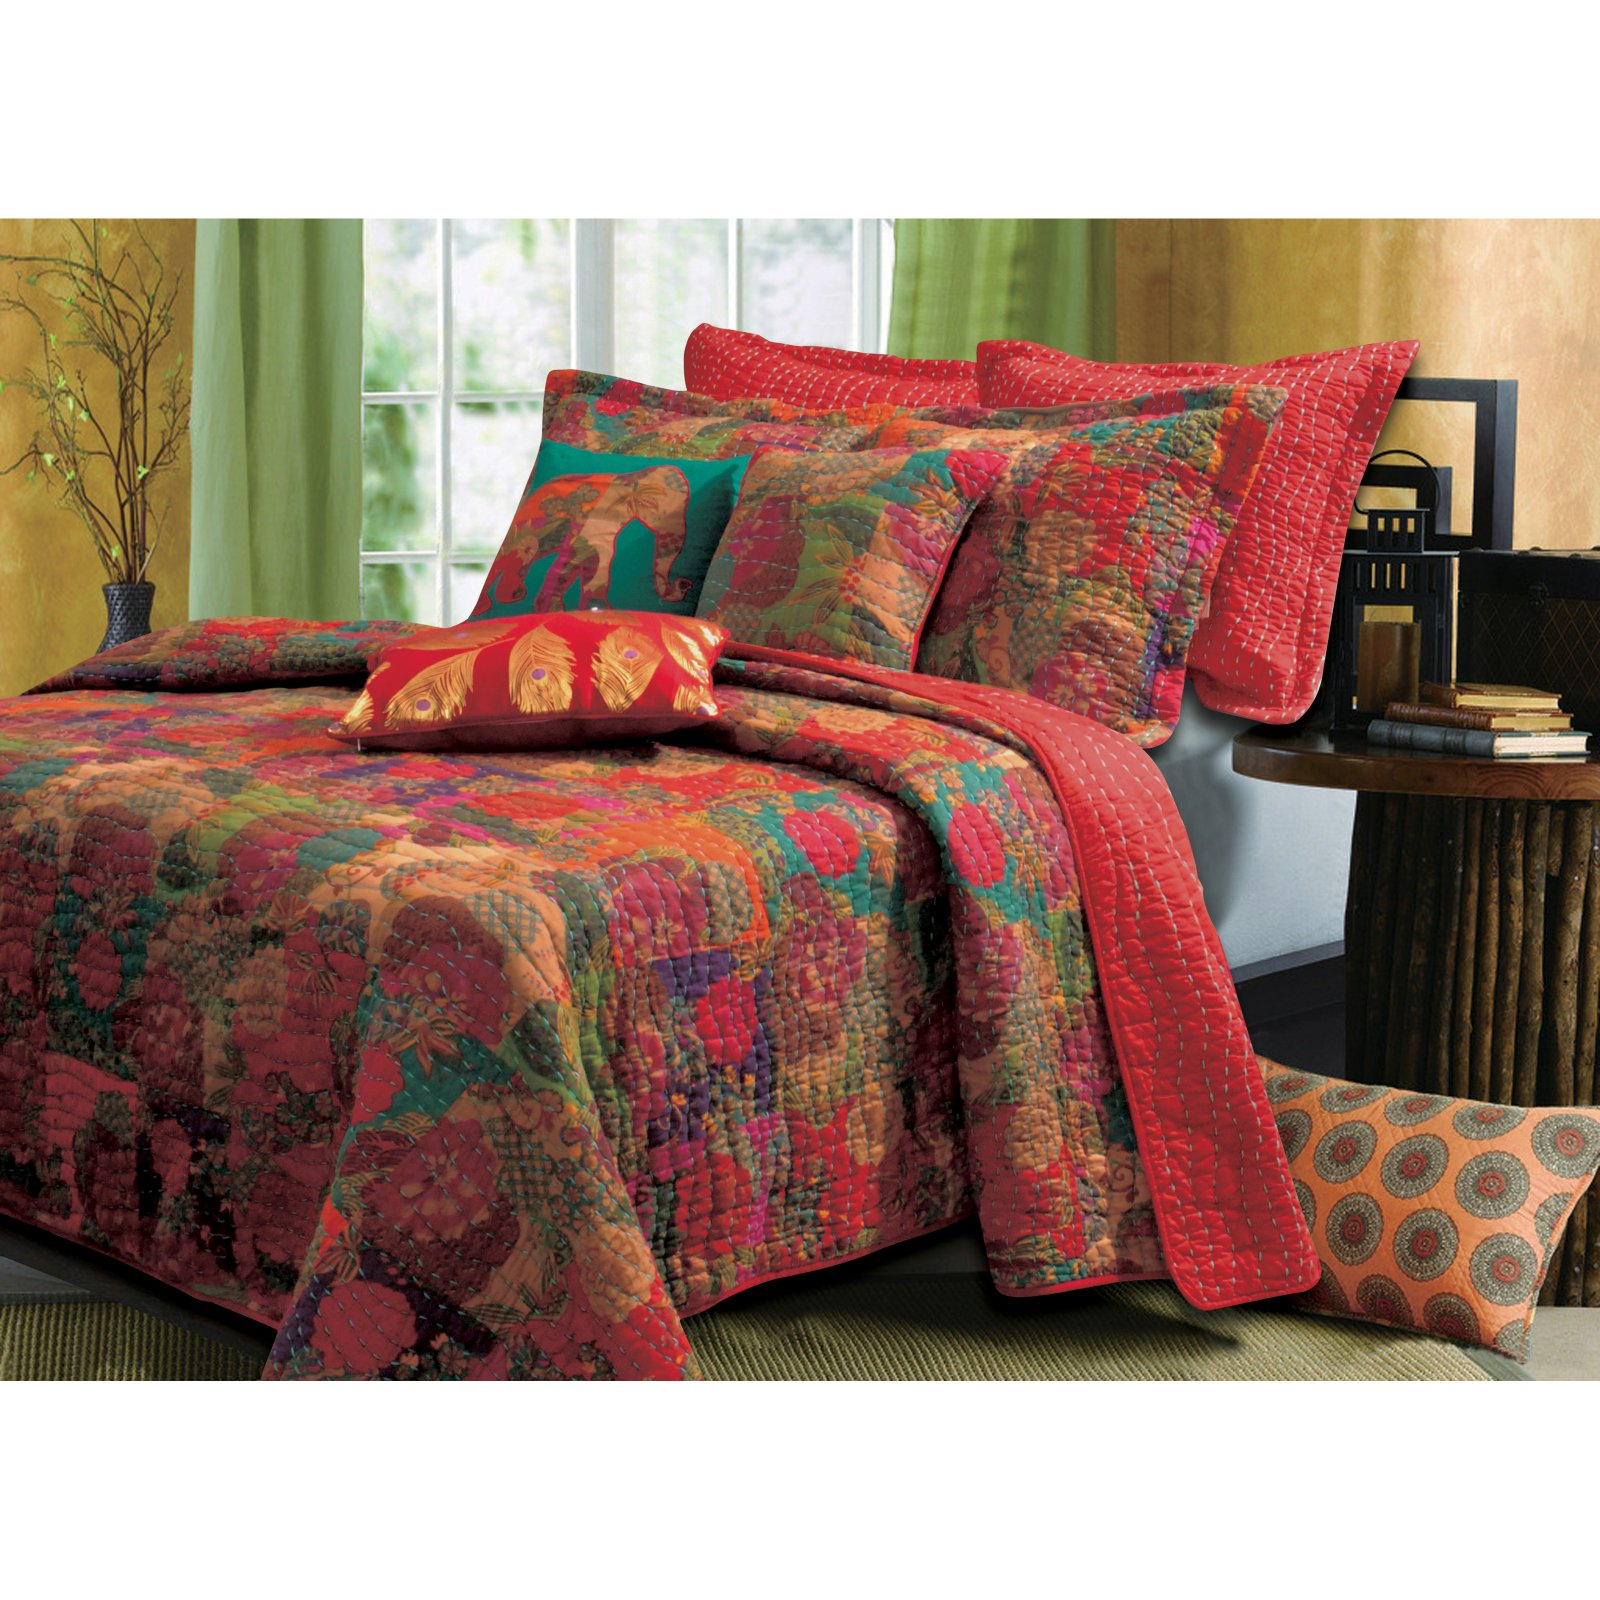 Greenland Home Fashions Jewel Bonus Quilt Set